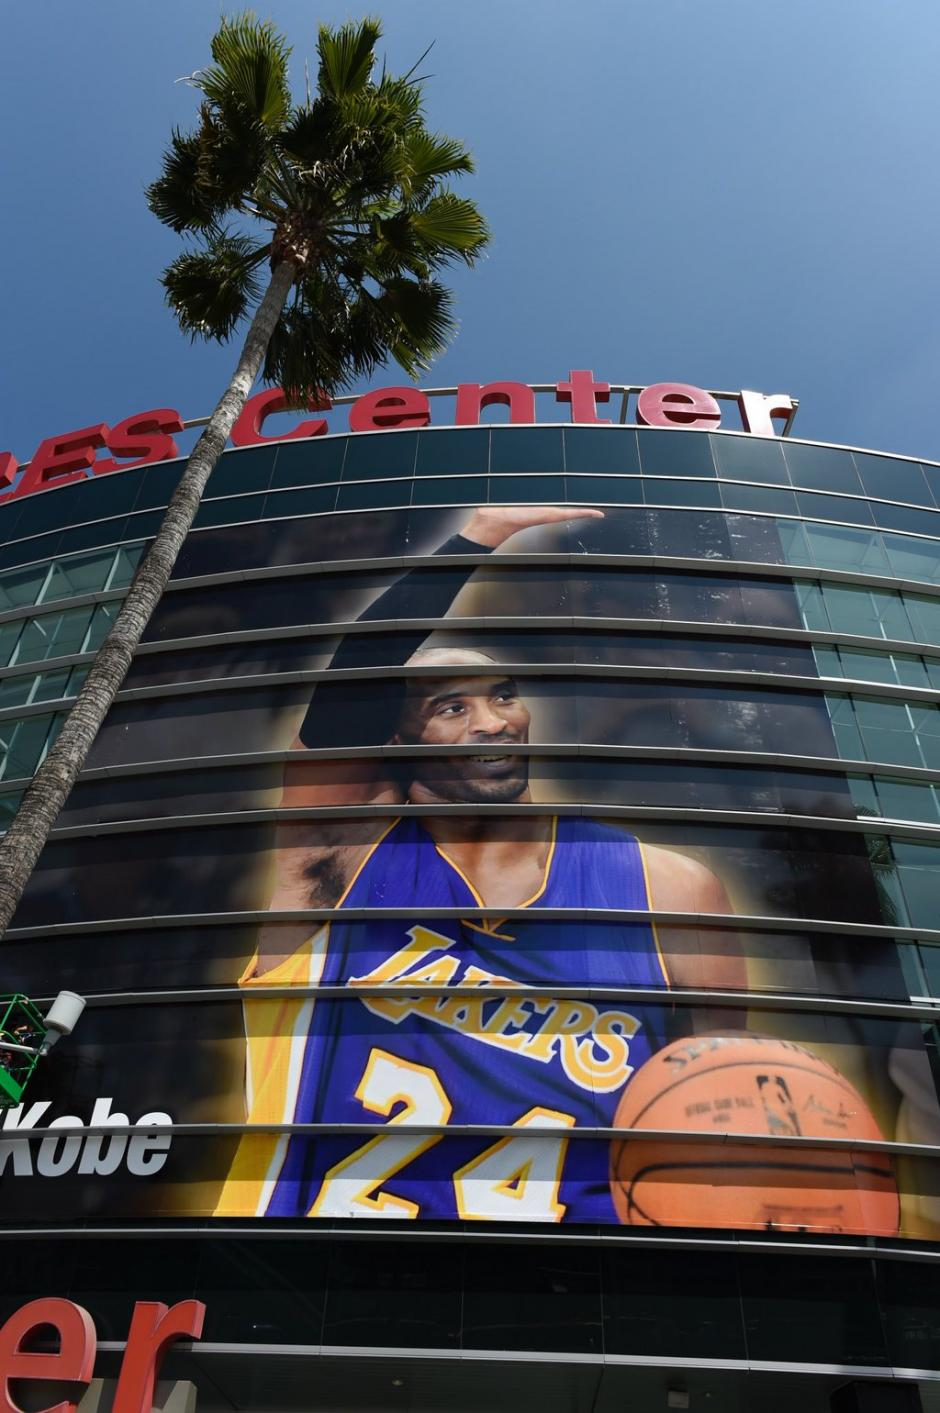 La fachada del Staples Center anuncia el adiós de Kobe. (Foto: Staples Center)